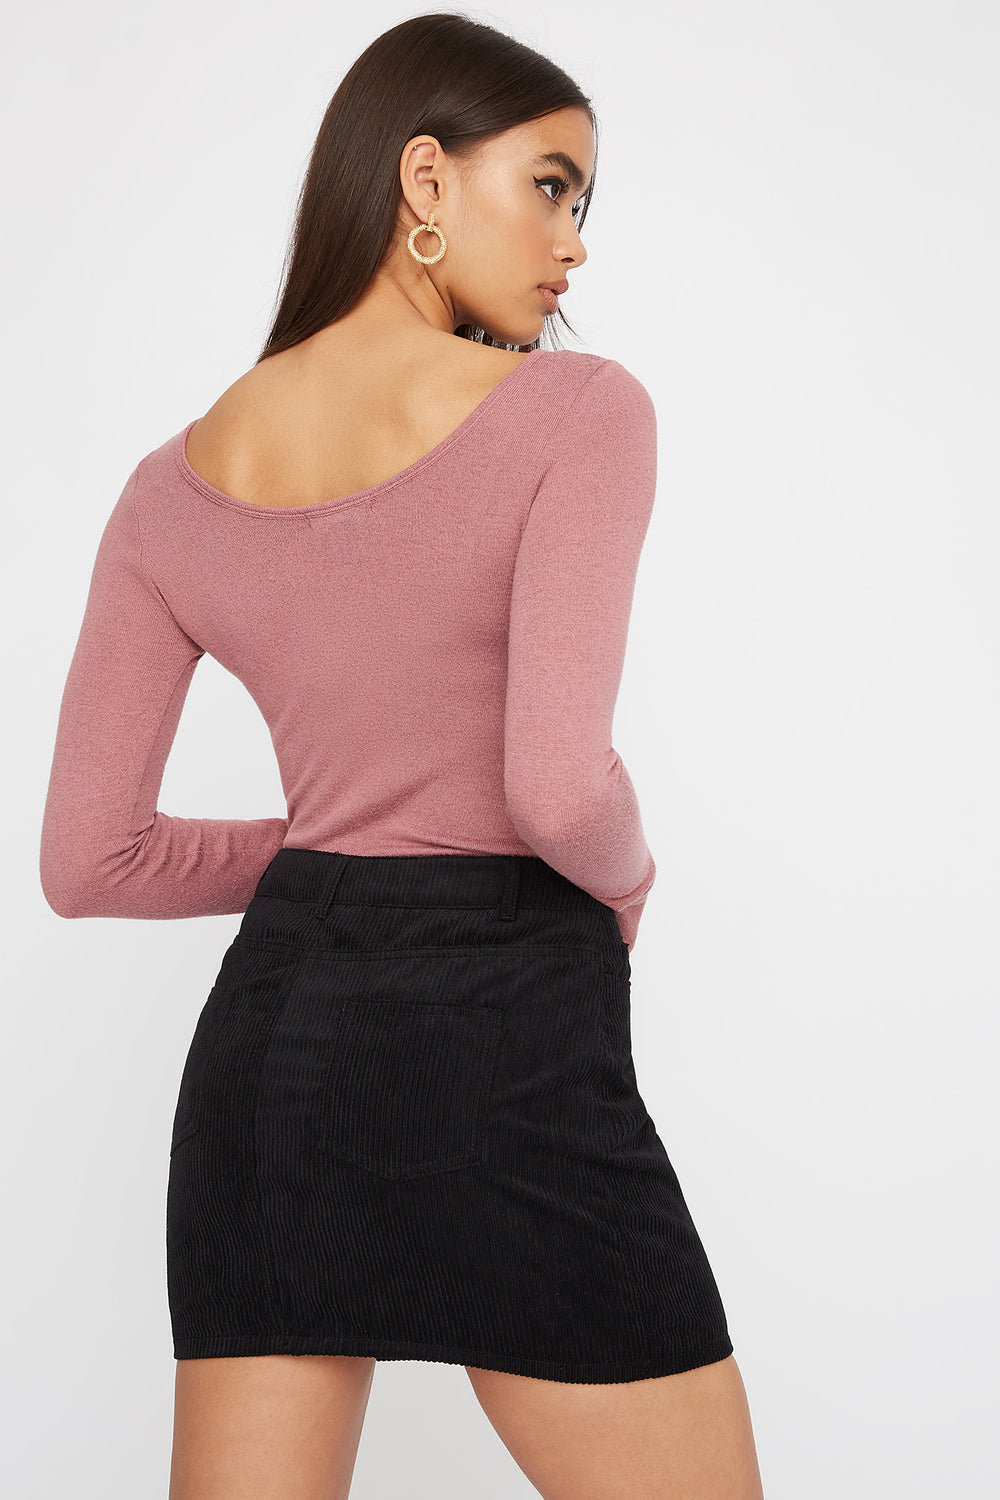 Scoop Neck Button Long Sleeve Rose